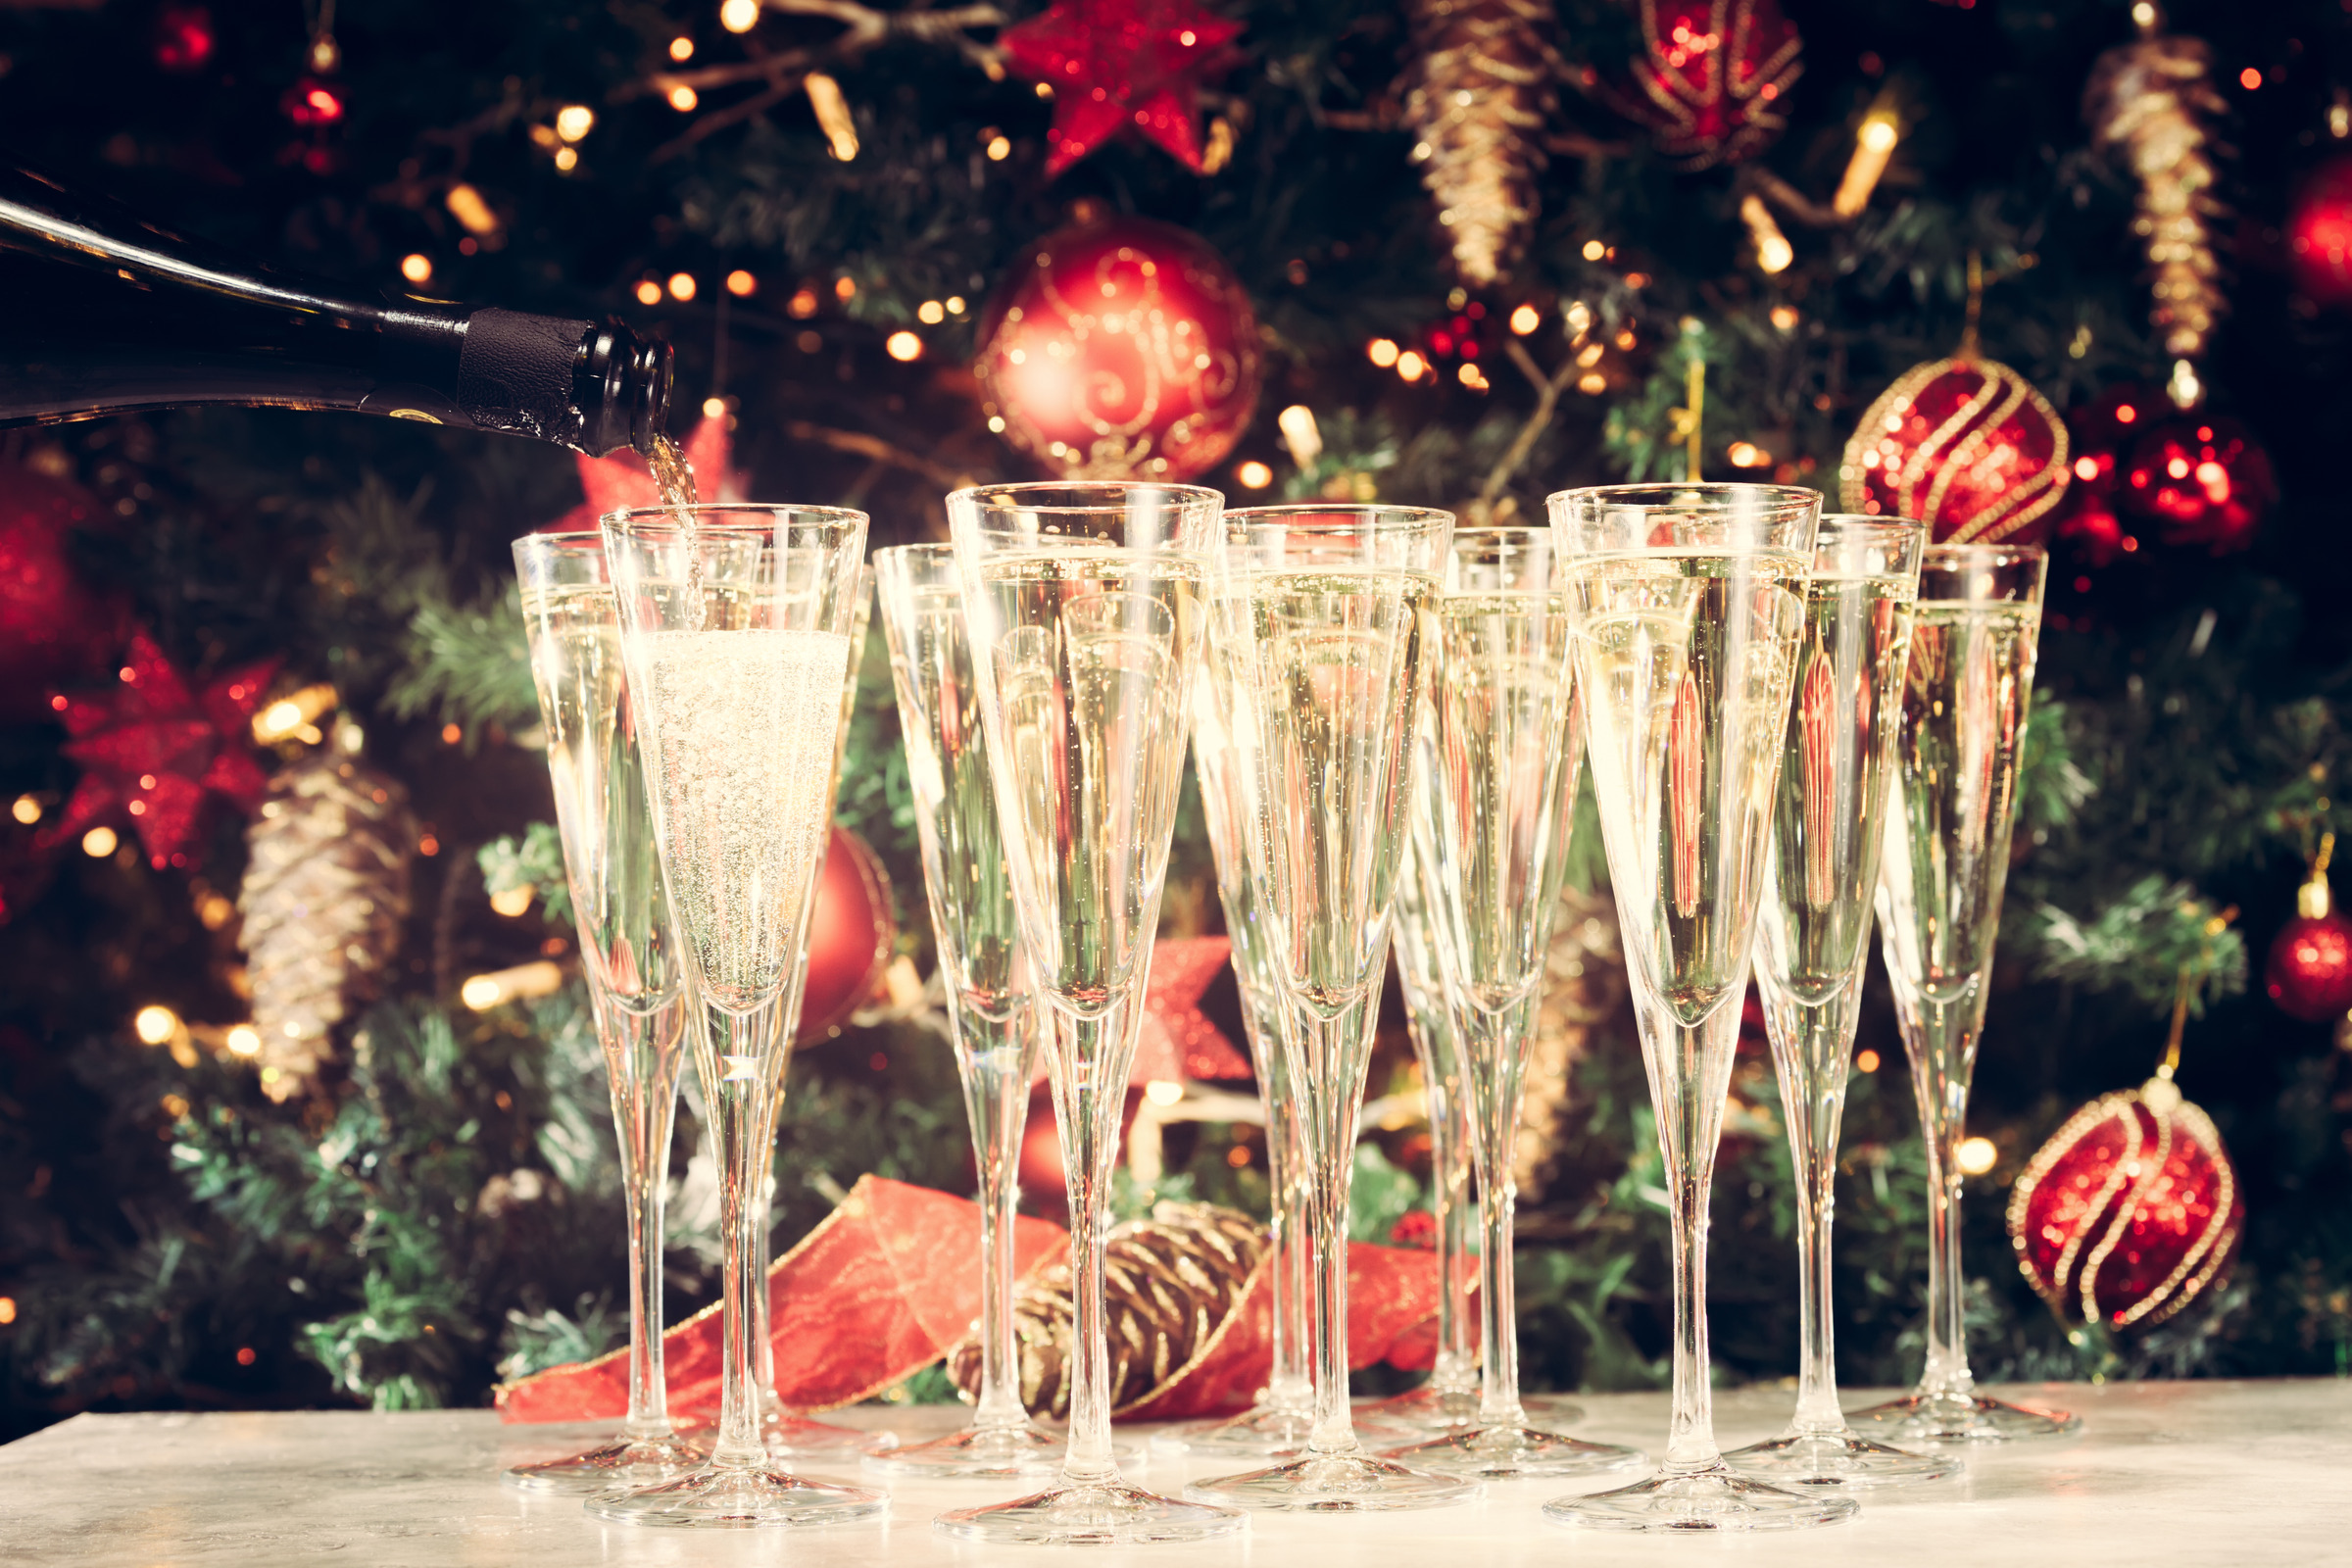 Filling up glasses for party. Many glasses of champagne with Christmas tree background. Party setup. Holiday season background. Traditional red and green Christmas decoration with lights. Holiday party. Horizontal